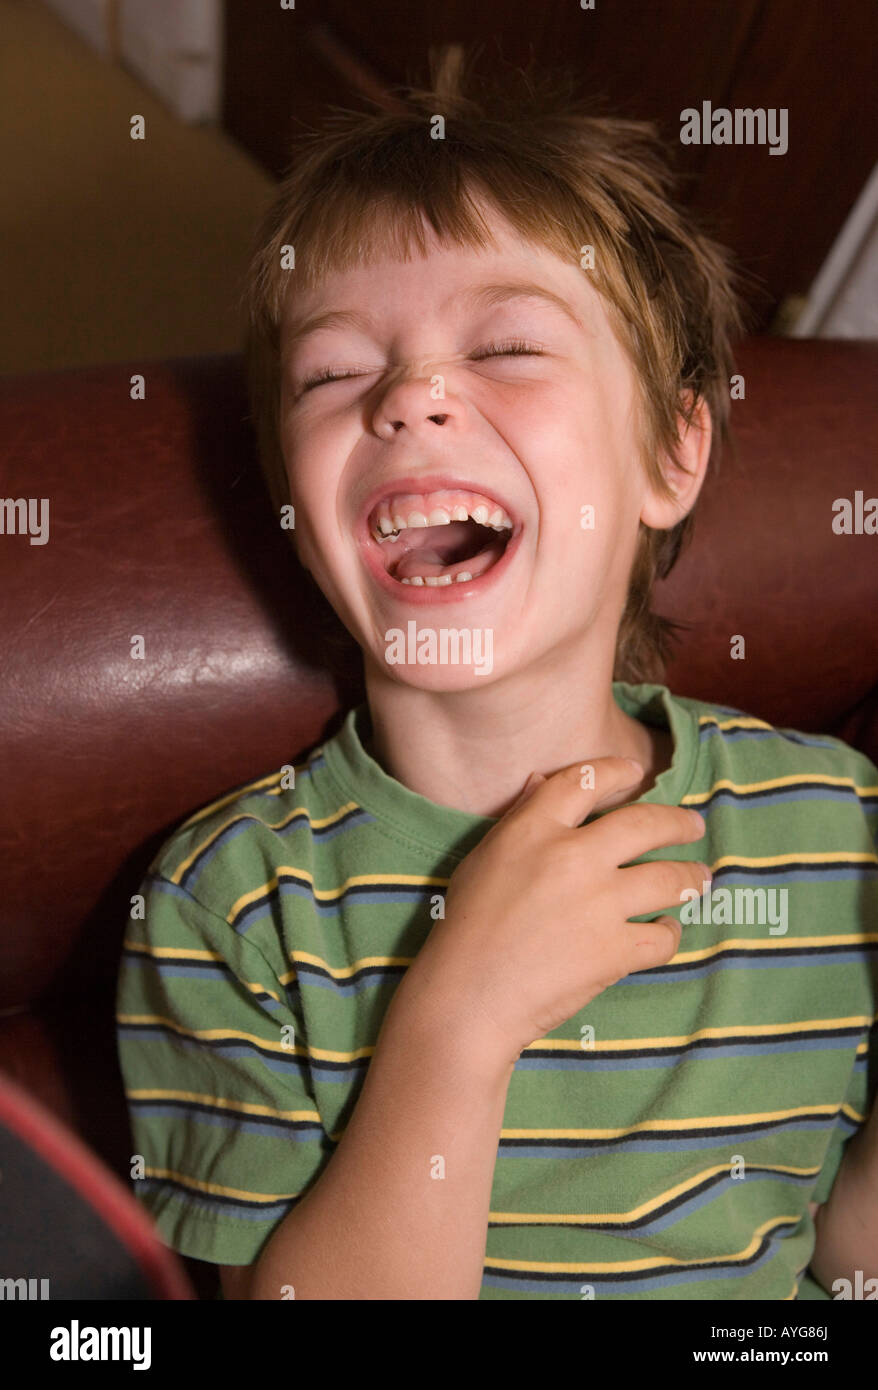 five year old boy laughing hard with mouth open - Stock Image